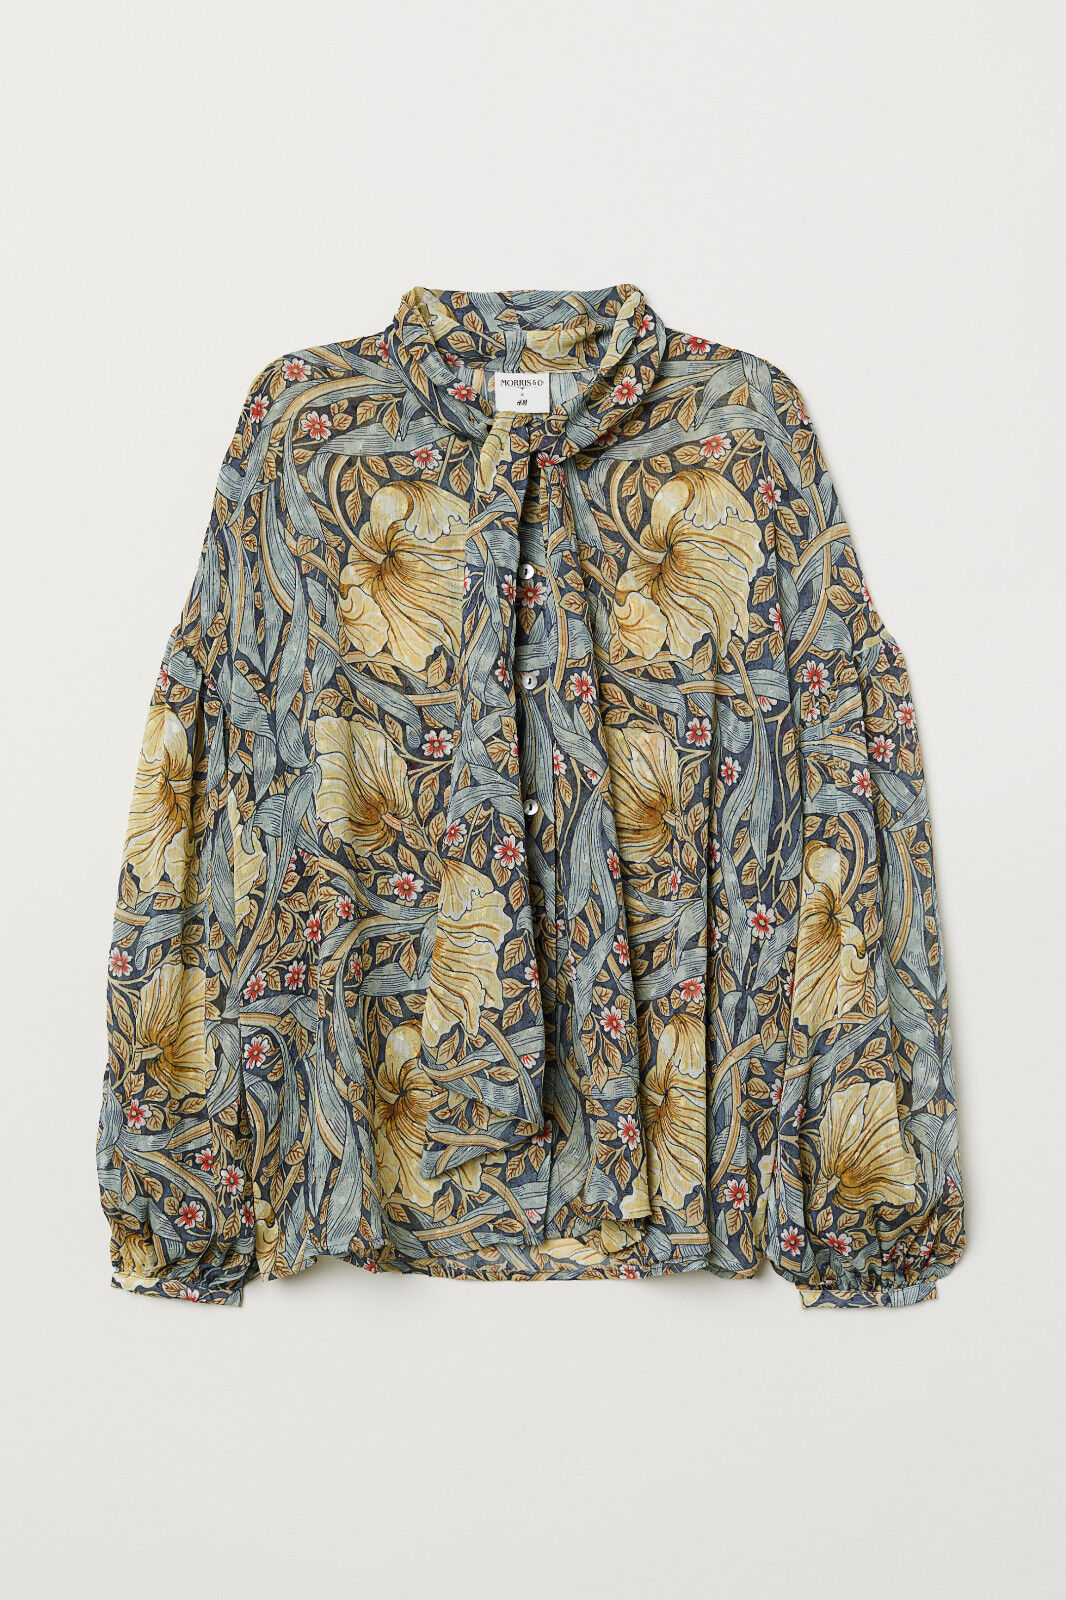 WILLIAM MORRIS & CO H&M blueE FLORAL PATTERENED BLOUSE TOP